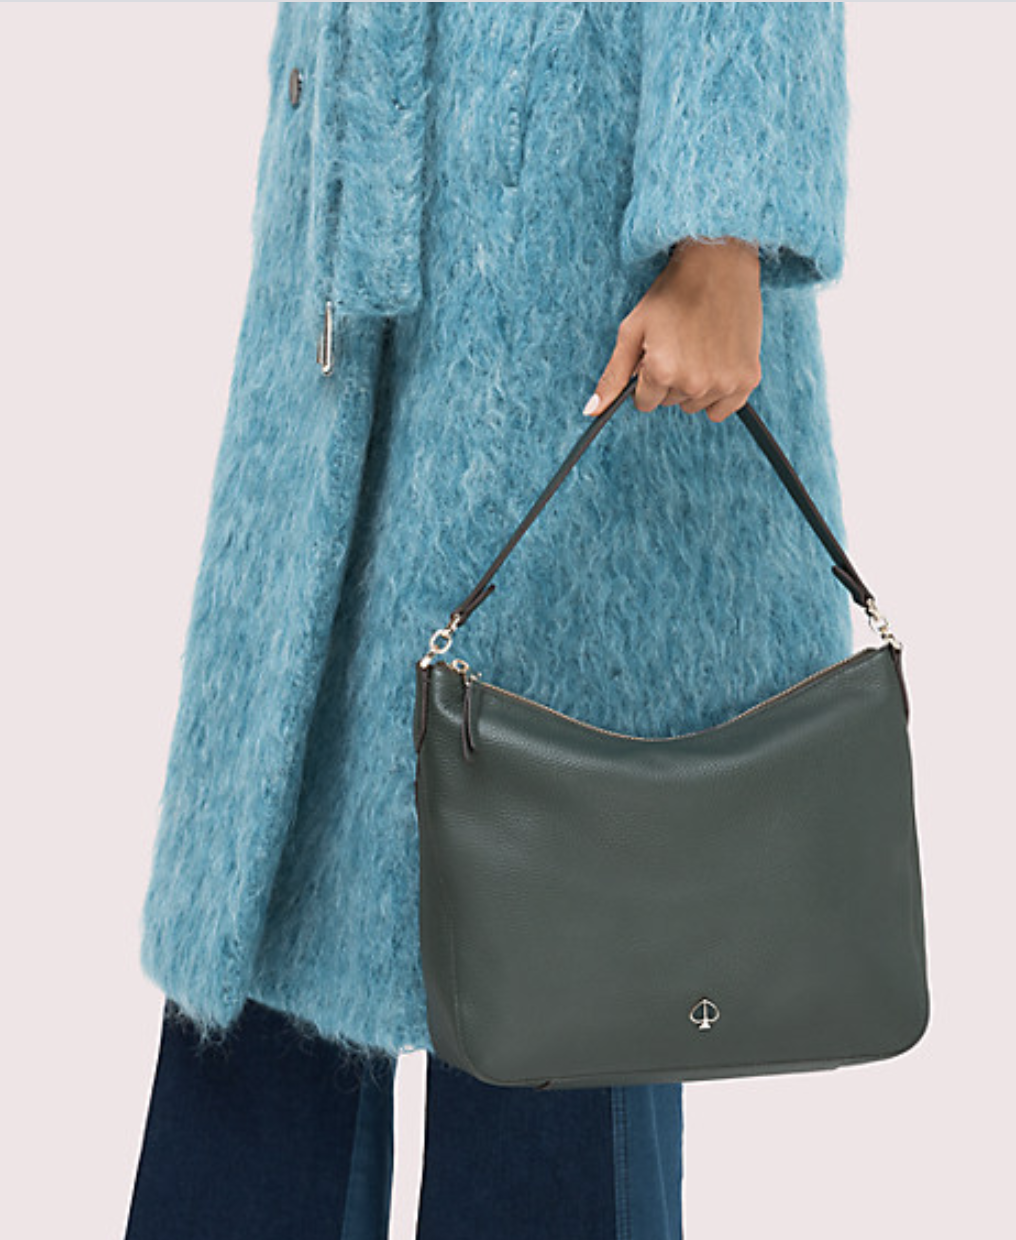 Model holding the slouchy-style shoulder bag in their hand